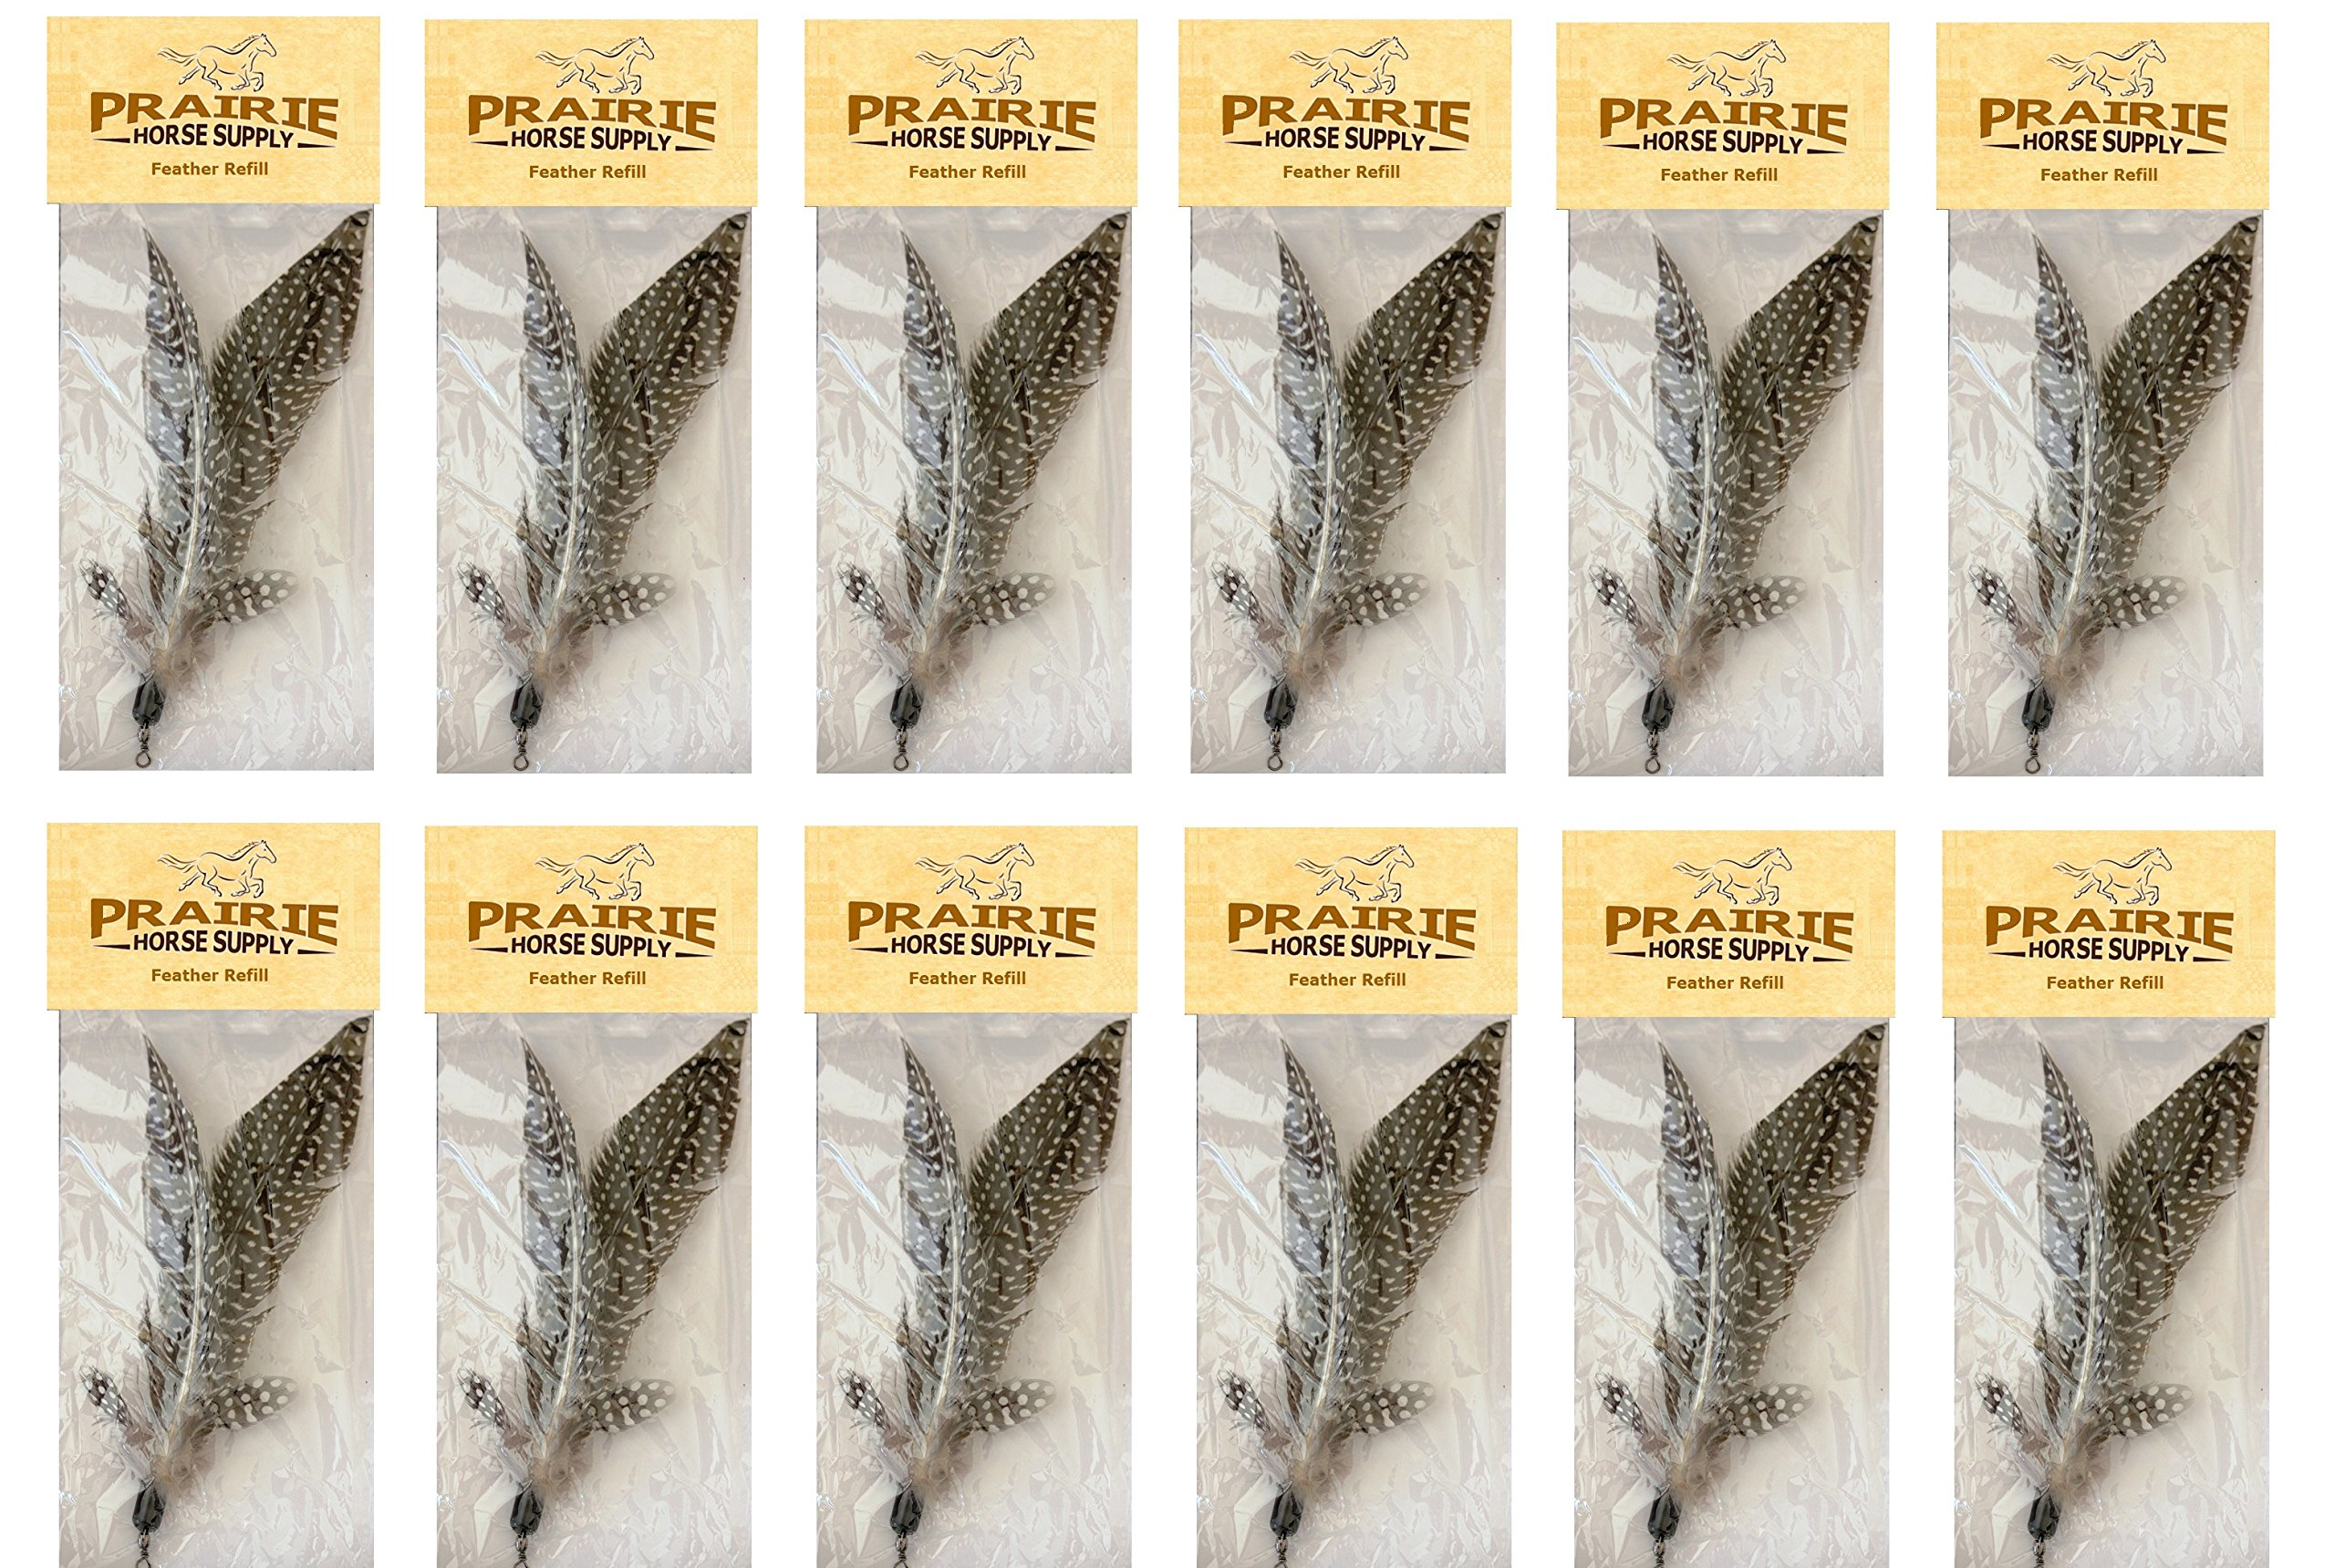 Replacement Refill Feathers for Da Bird GoCat Toy Feather Teaser Wand Pole Cat Toy (12 pack), by Prairie Horse Supply